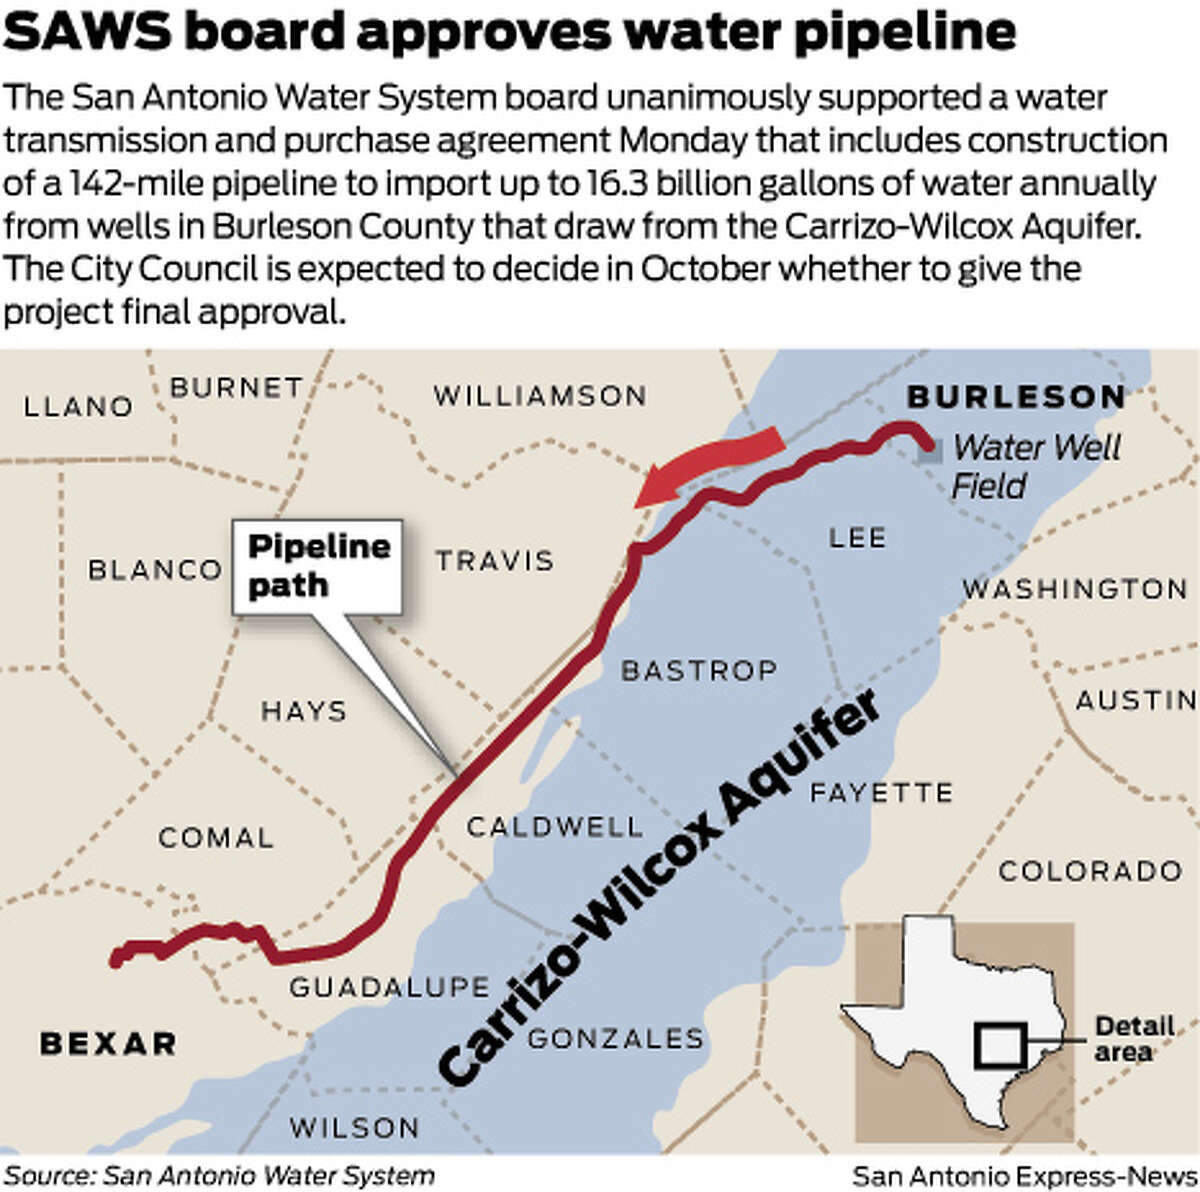 The San Antonio Water System board unanimously supported a water transmission and purchase agreement Monday that includes construction of a 142-mile pipeline to import up to 16.3 billion gallons of water annually from wells in Burleson County that draw from the Carrizo-Wilcox Aquifer. The City Council is expected to decide in October whether to give the project final approval.